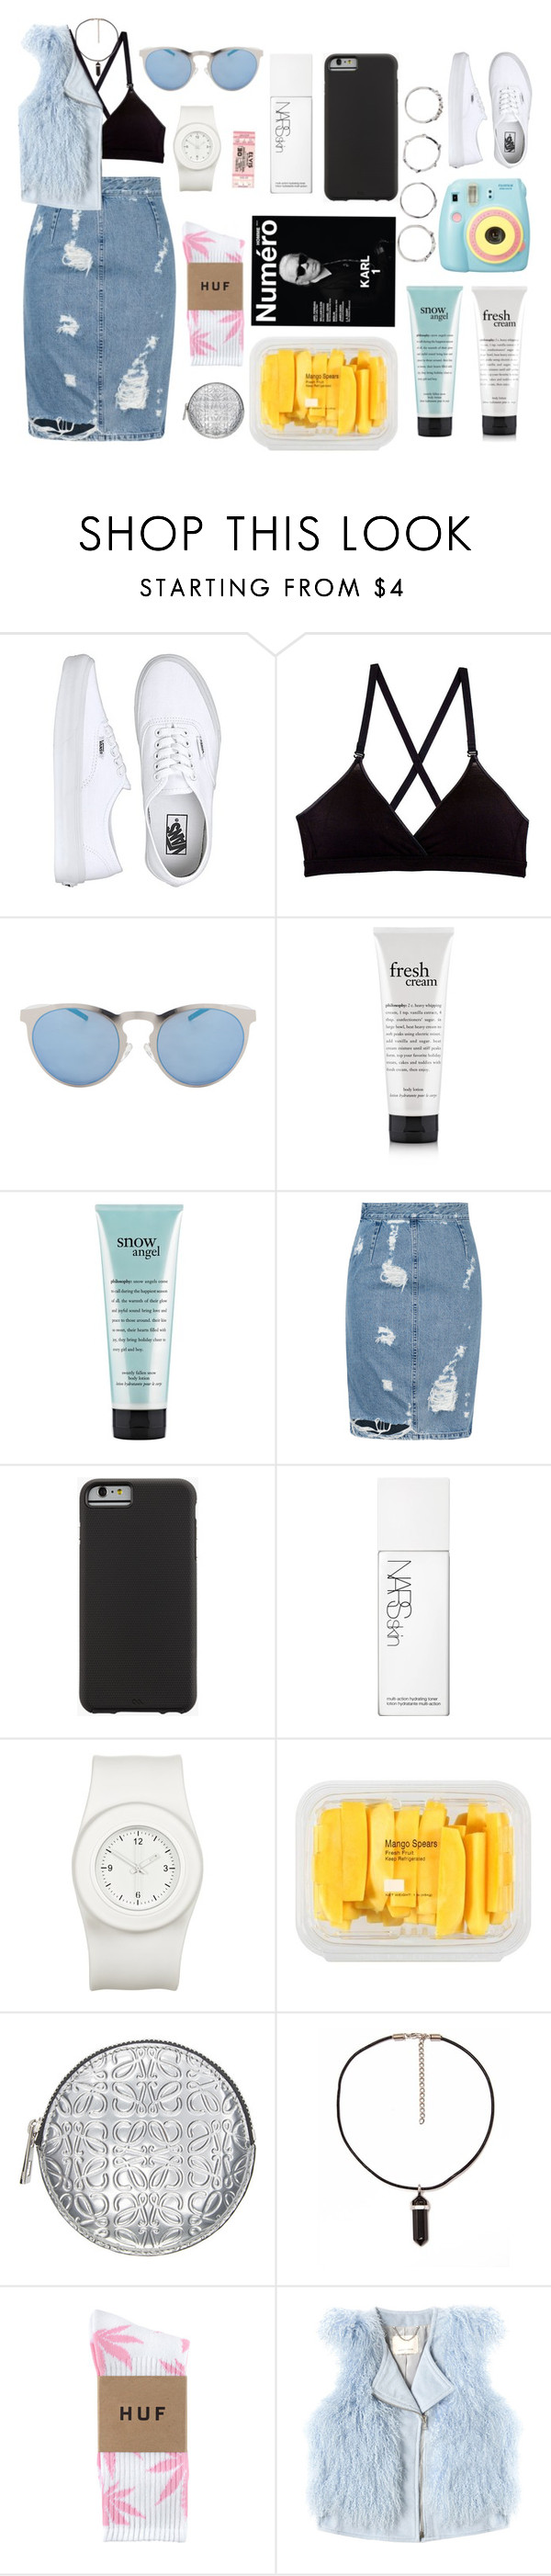 """""""Sin título #41"""" by blenm ❤ liked on Polyvore featuring Vans, Cosabella, Illesteva, philosophy, Acne Studios, Case-Mate, NARS Cosmetics, The Unbranded Brand, MANGO and Loewe"""